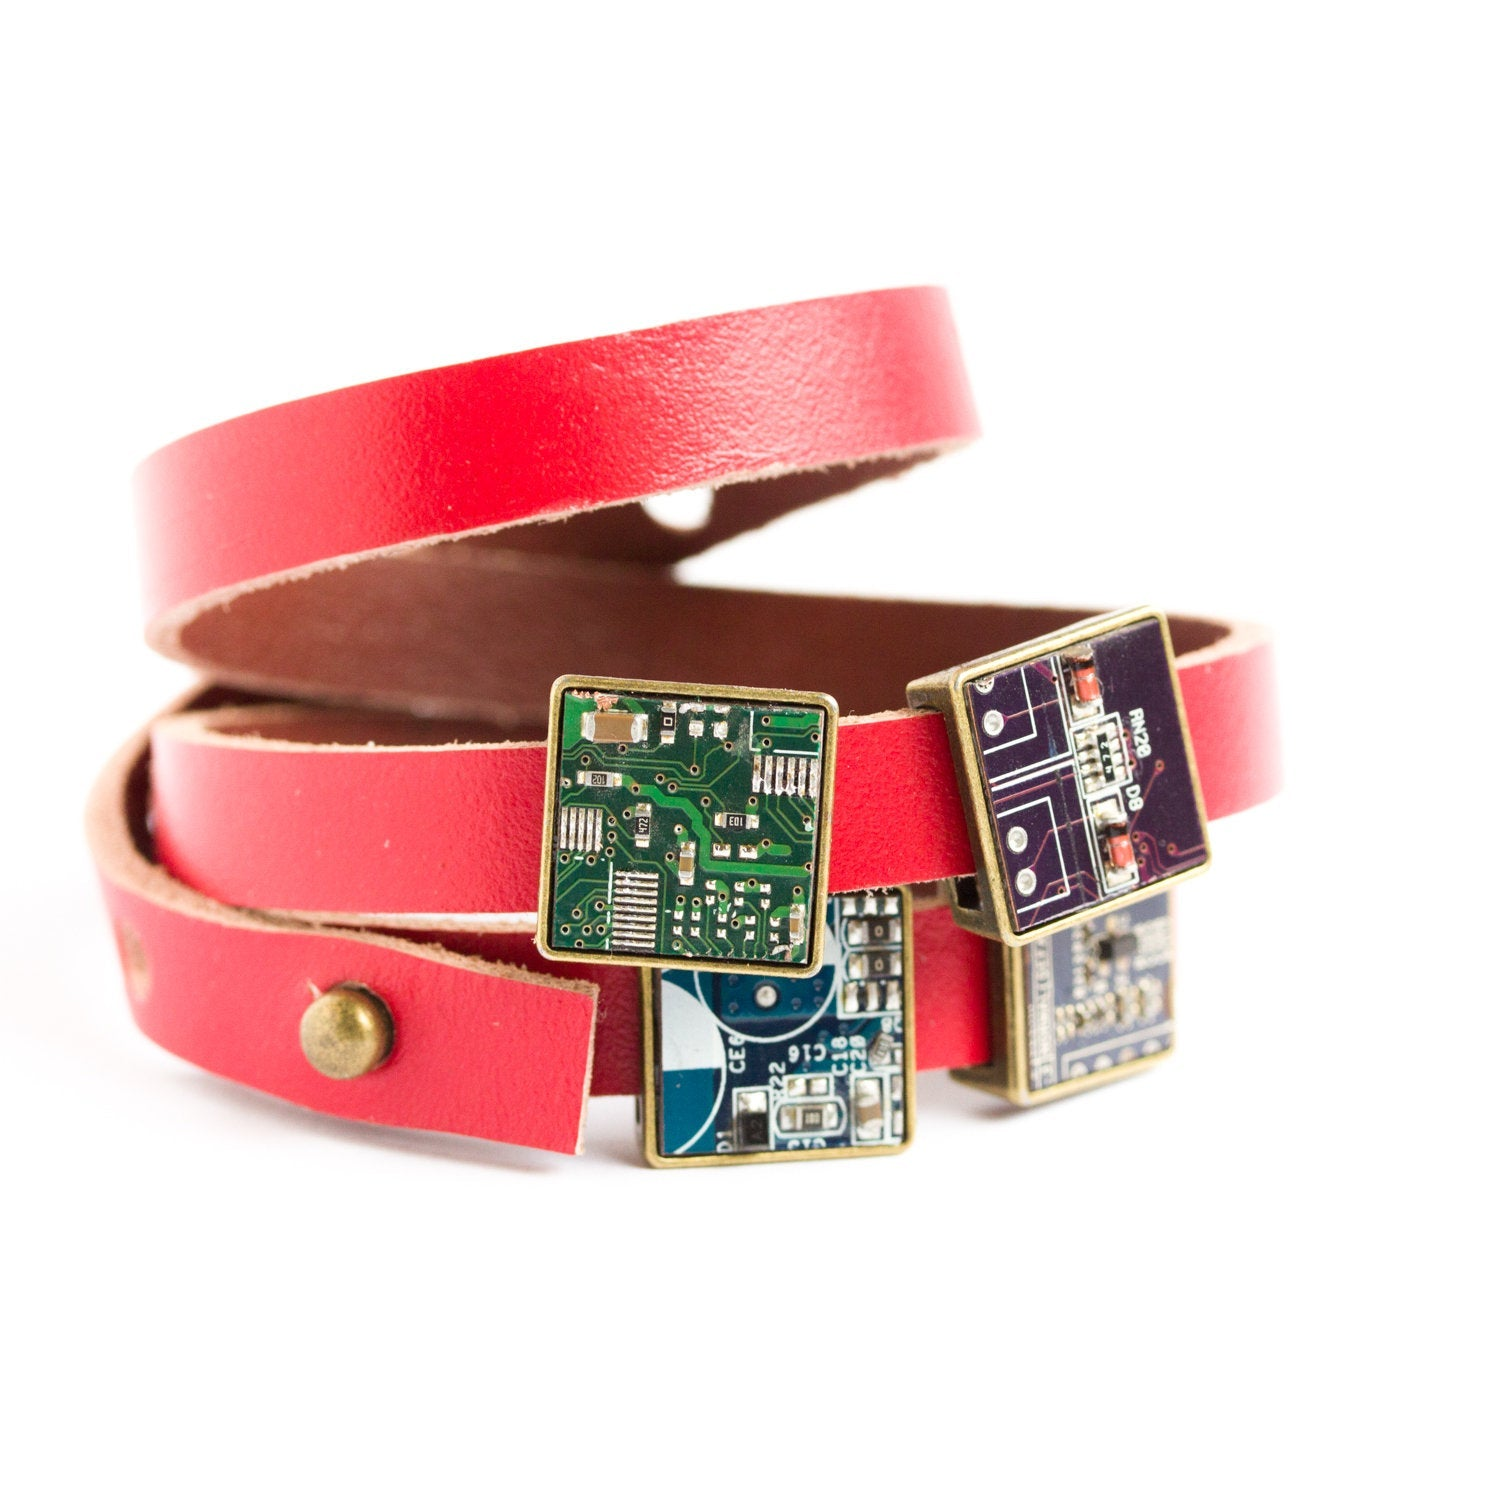 Wrap leather bracelet - customizable bracelet with circuit board beads